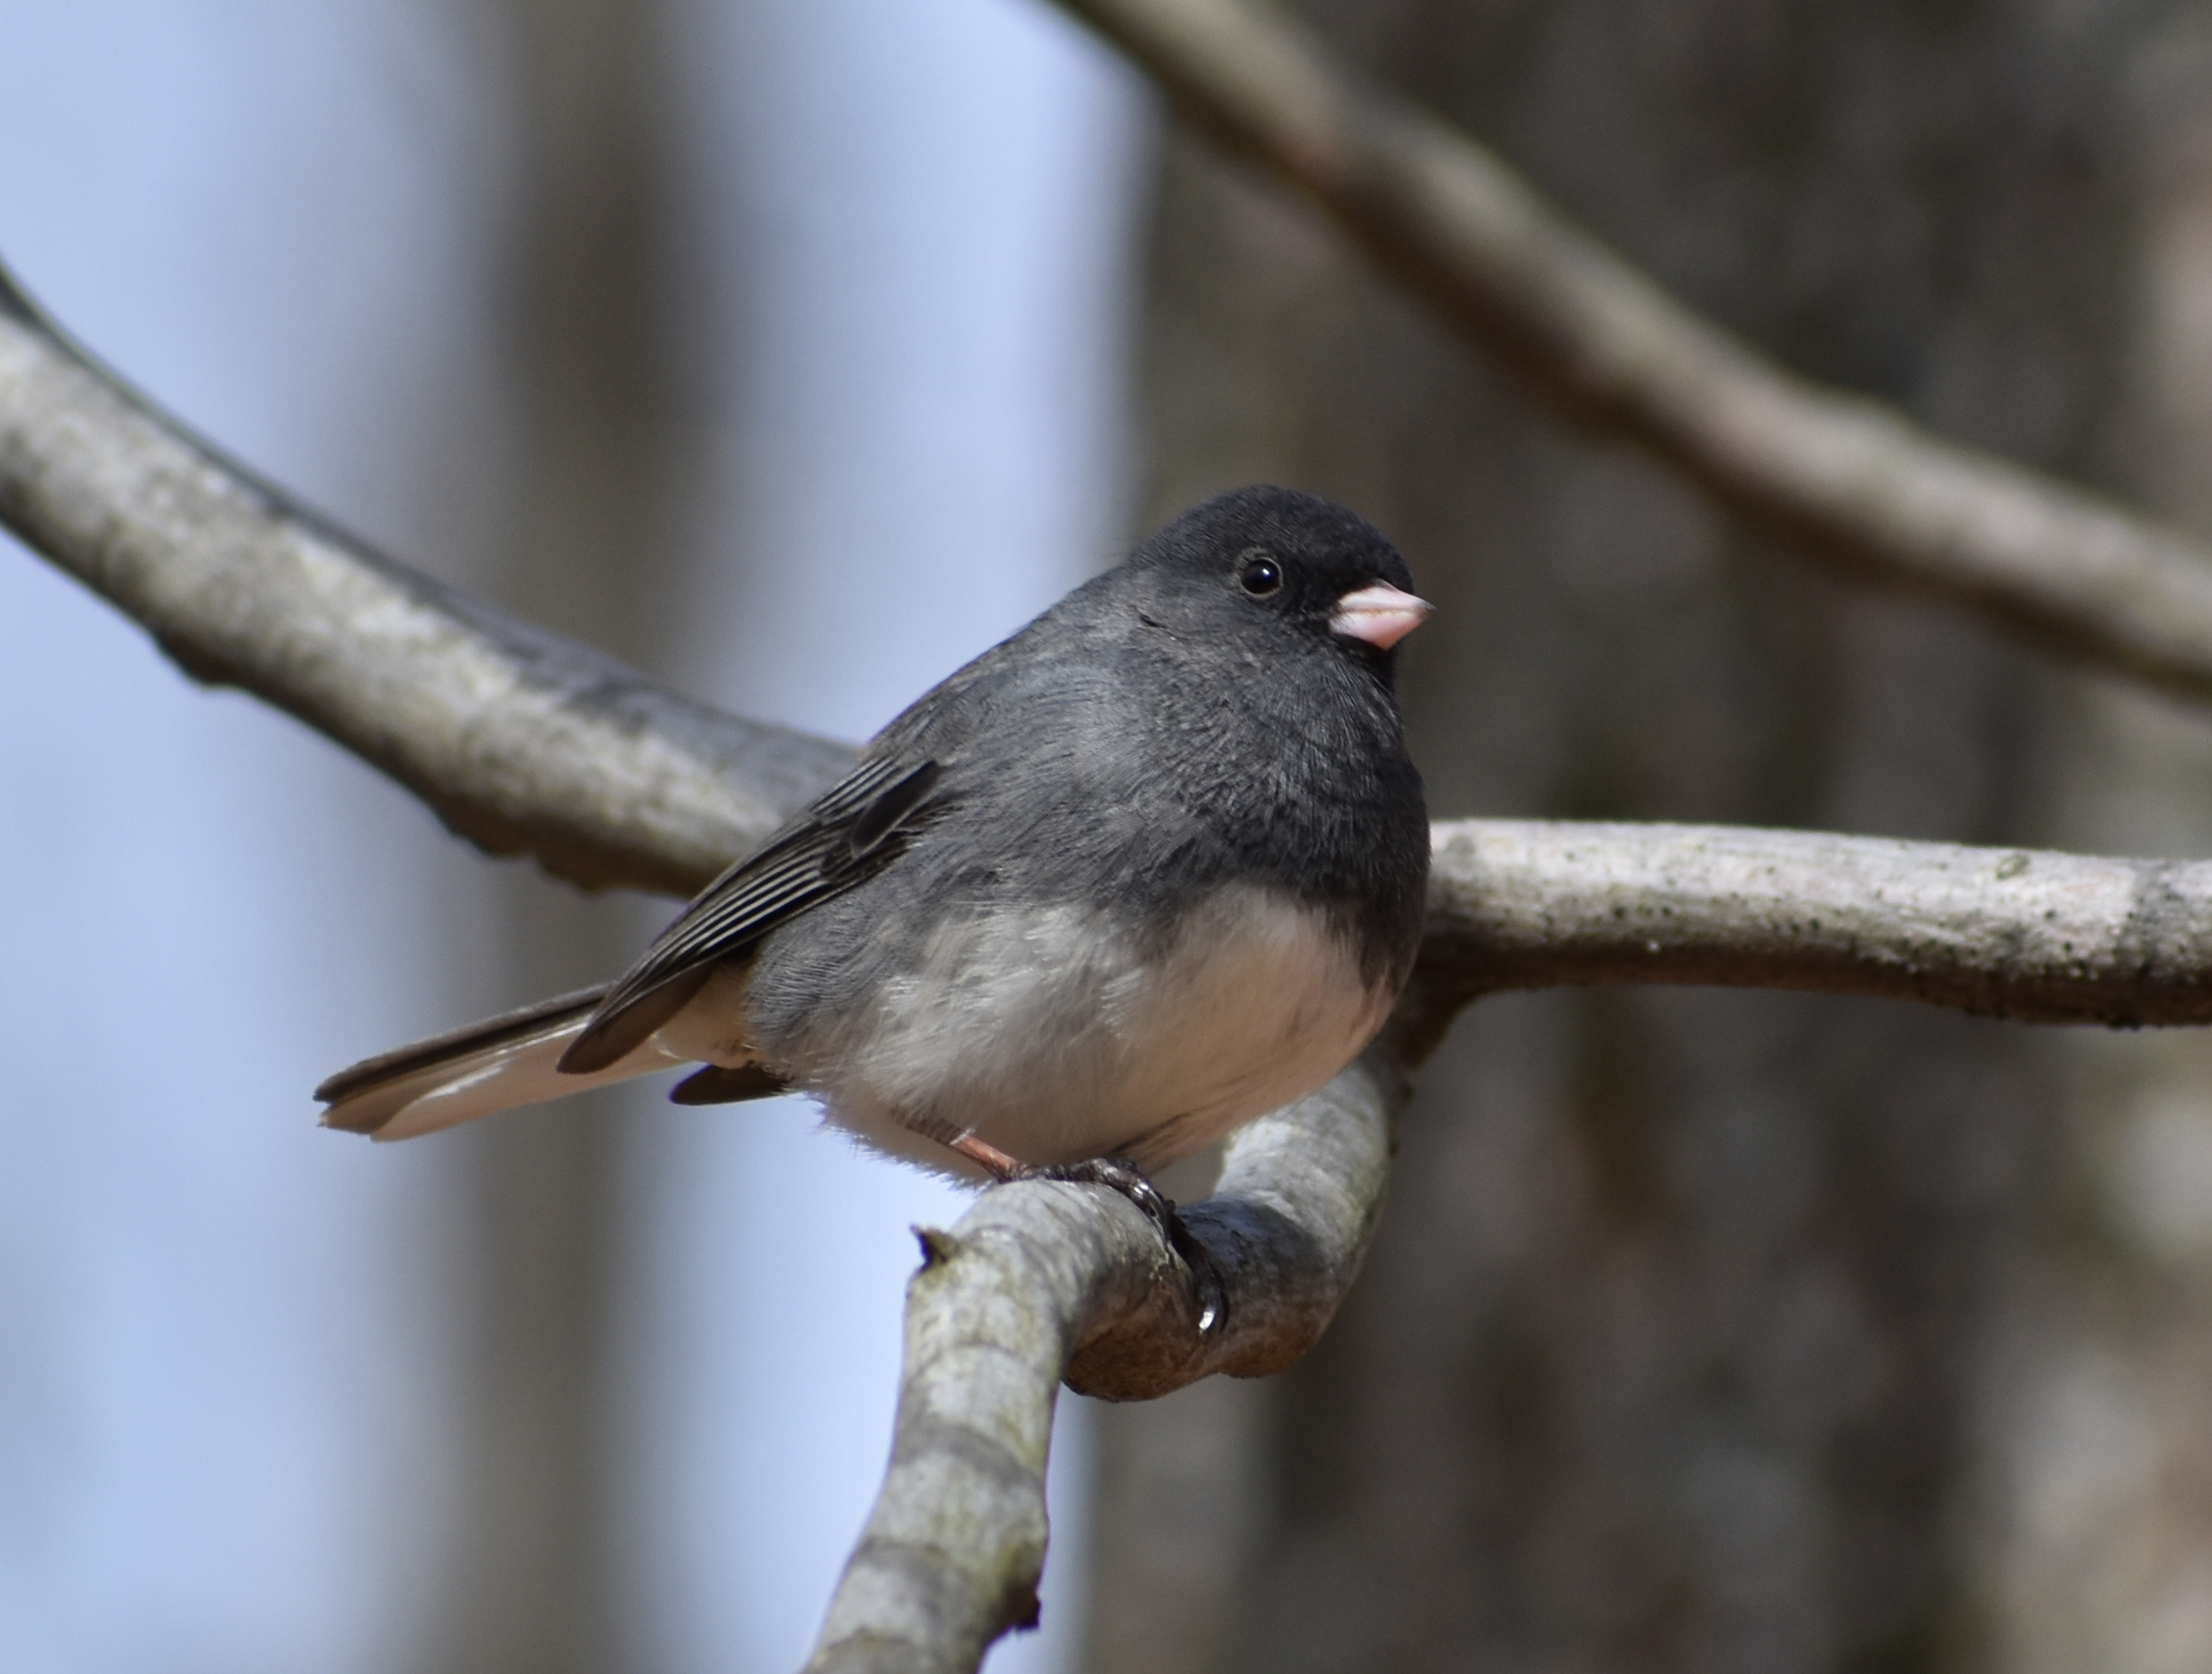 How to Attract Dark-Eyed Junco